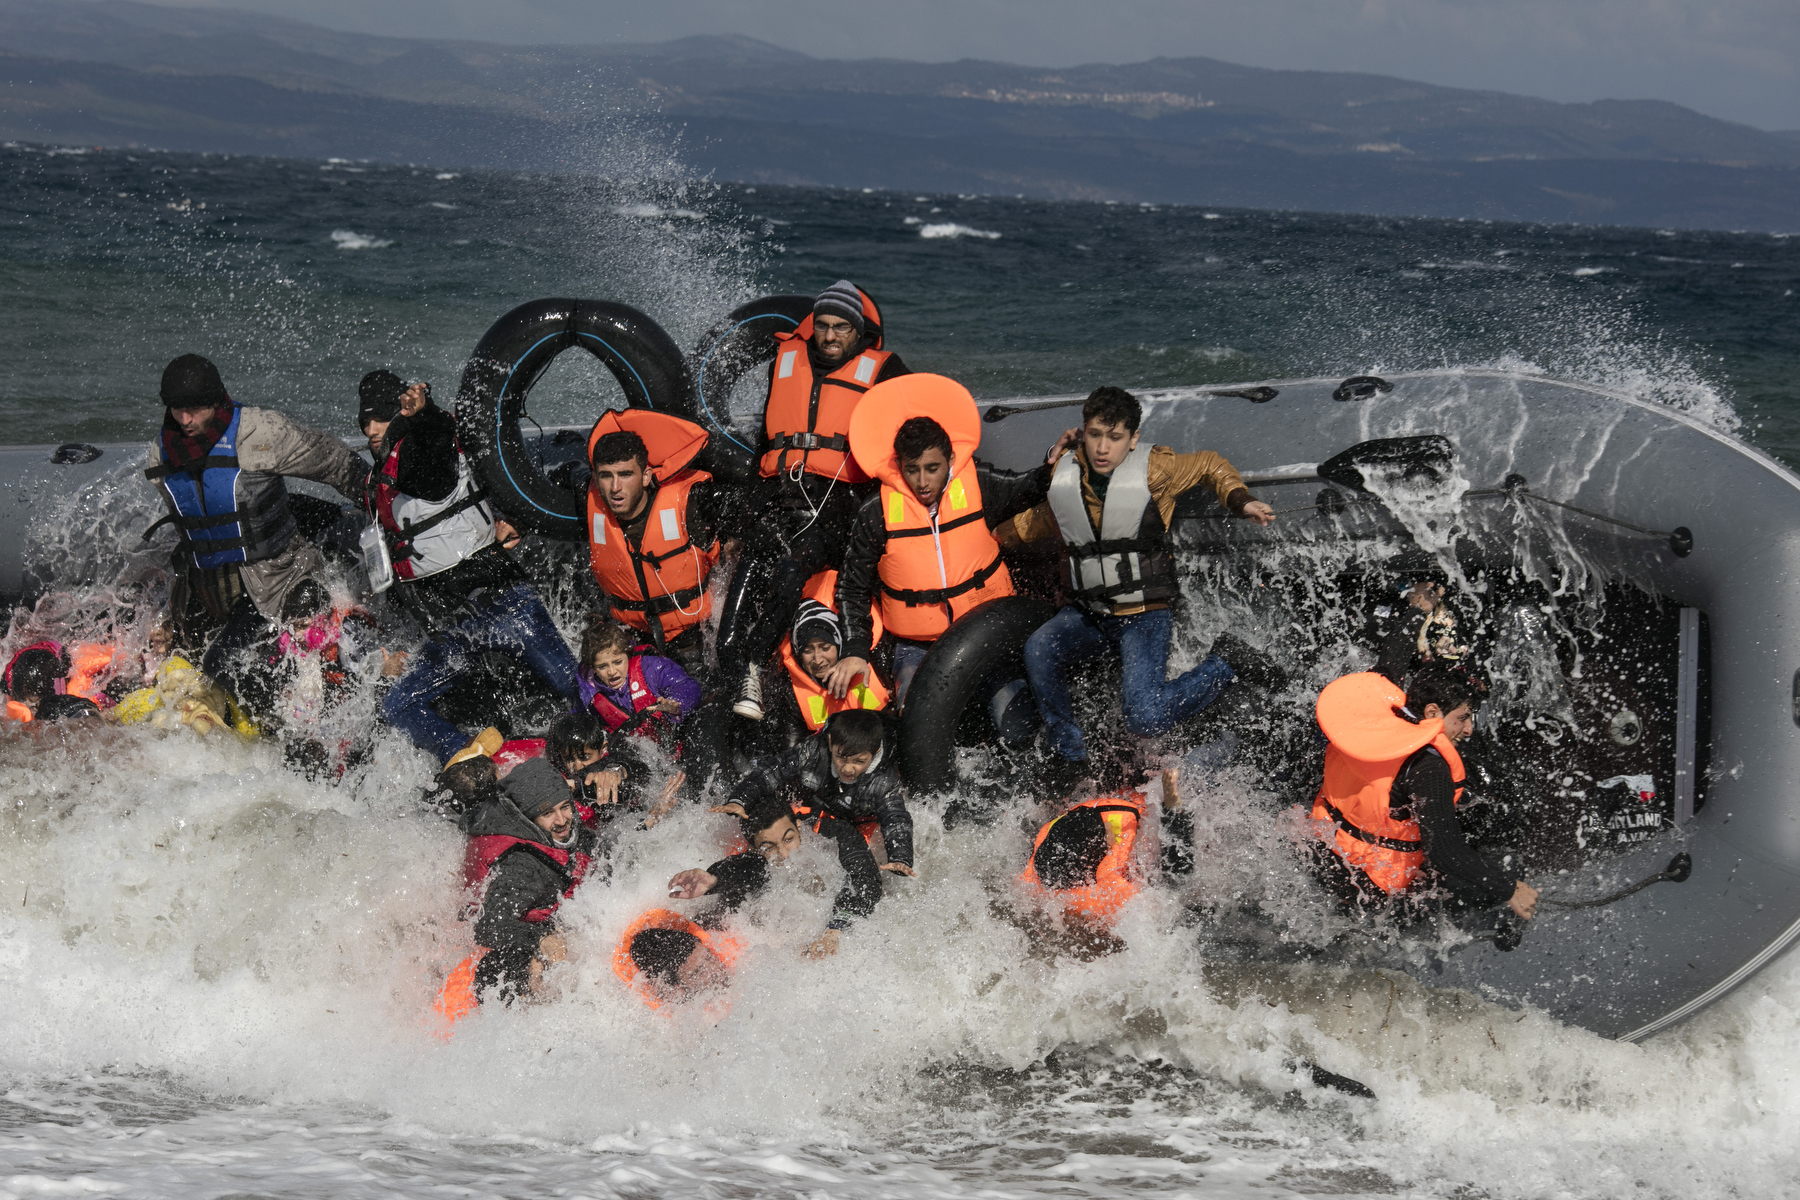 LESBOS, GREECE - OCTOBER 31: Refugees arriving to the island of Lesbos fall out of a boat as it capsizes landing in rough seas coming from Turkey on October 31, 2015 in Lesbos, Greece. Dozens of rafts and boats are still making the journey daily via the Aegean Sea, over 590,000 people have crossed into the gateway of Europe. Nearly all of those are from the war zones of Syria, Iraq and Afghanistan. (Photo by Paula Bronstein)